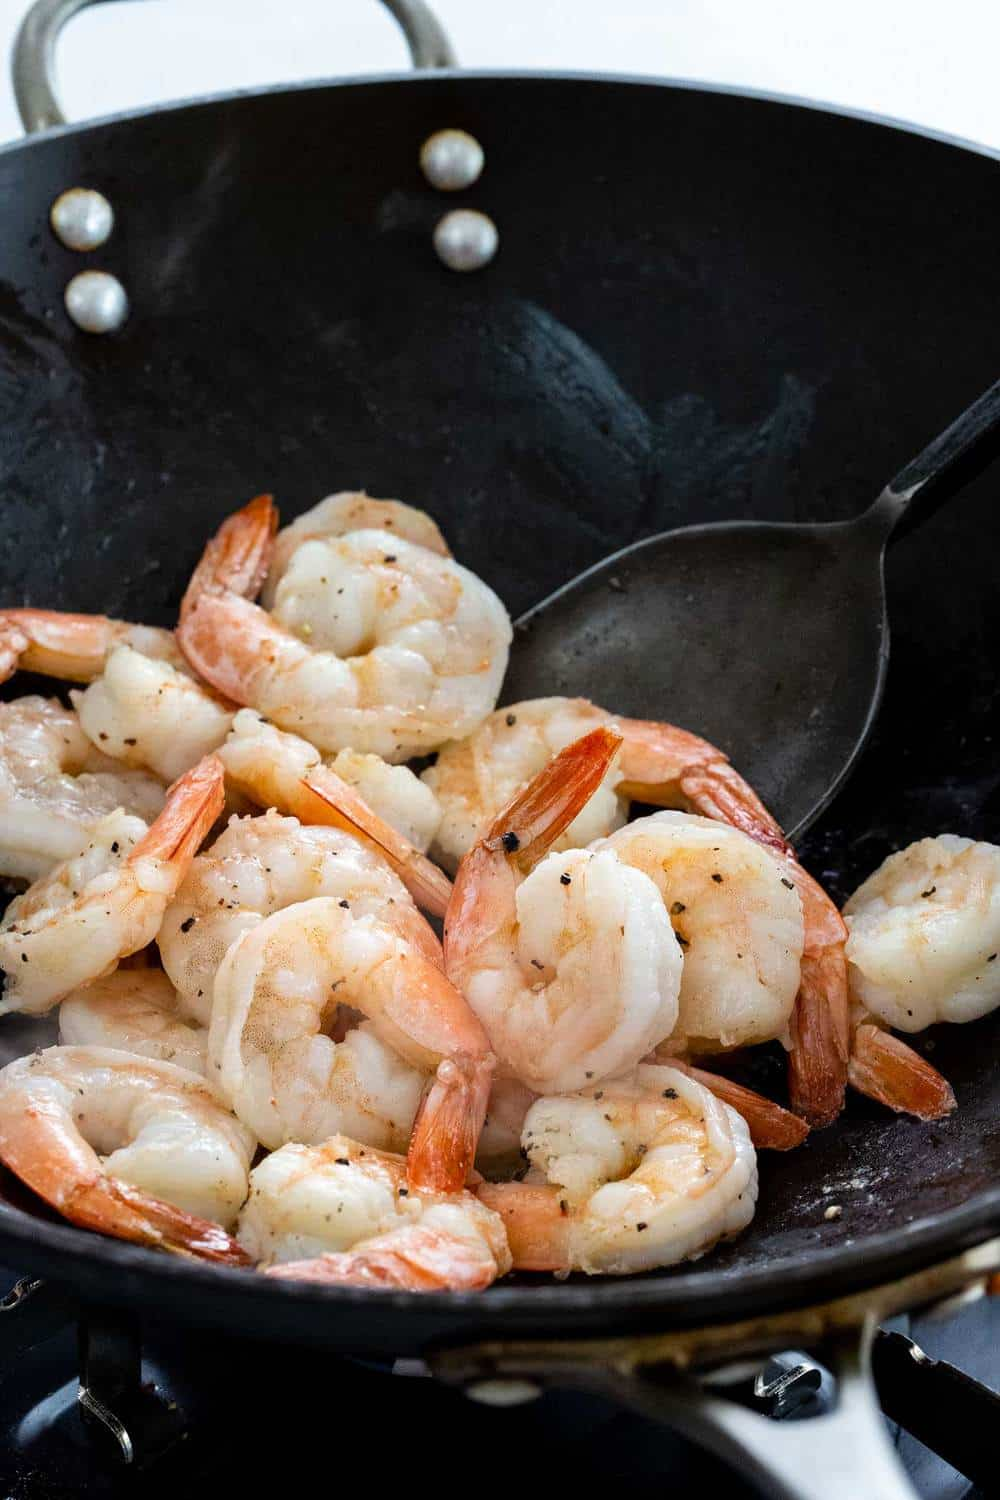 shrimp cooking in a wok